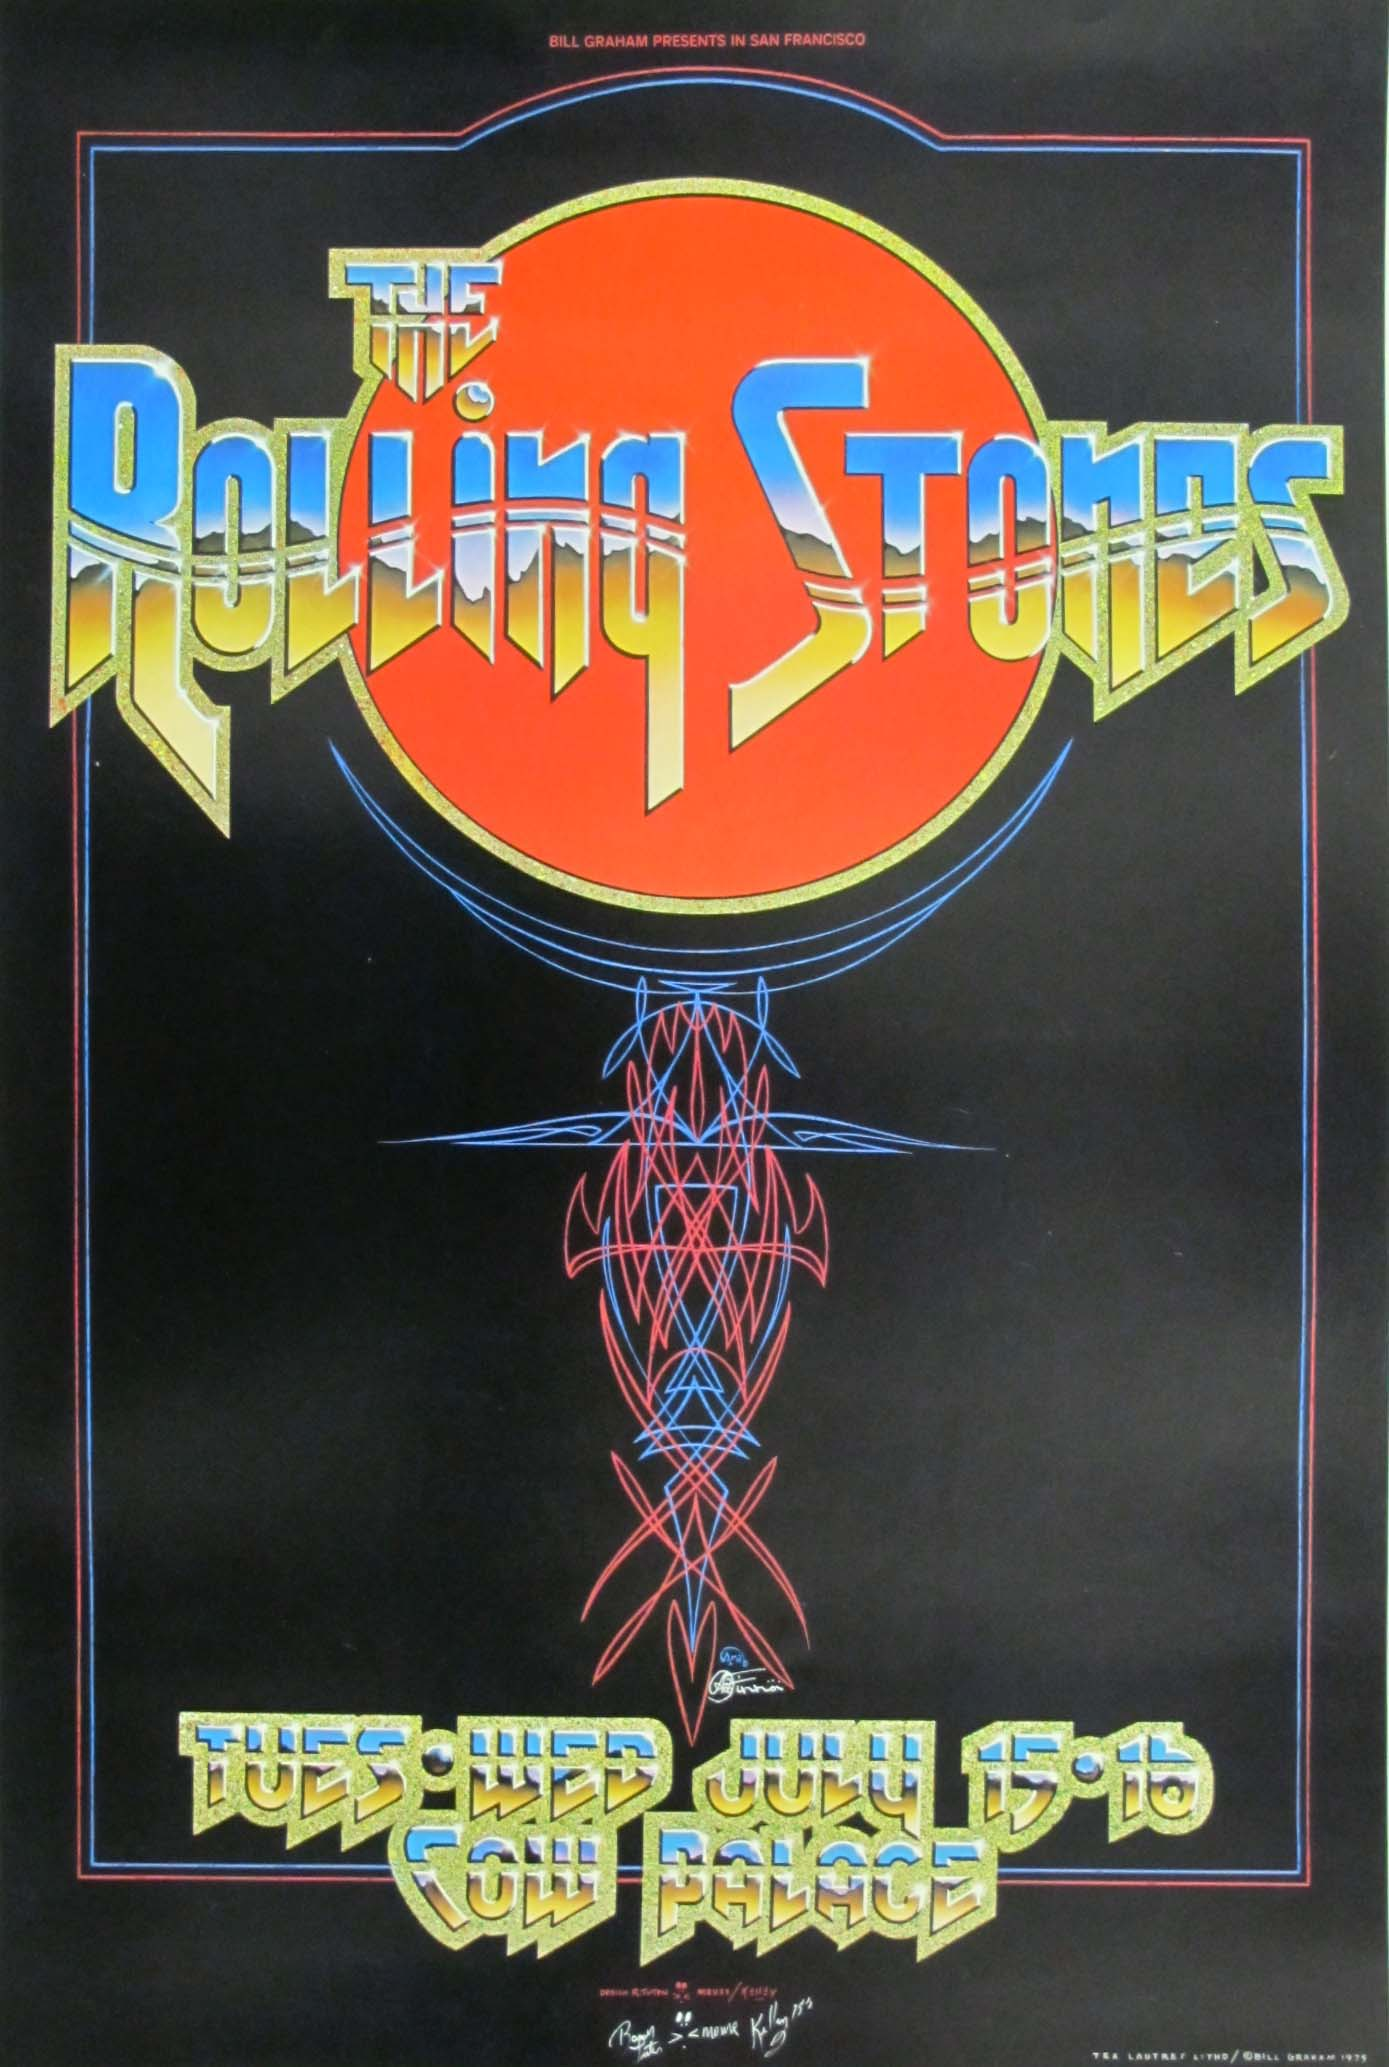 The Rolling Stones Concert Tour